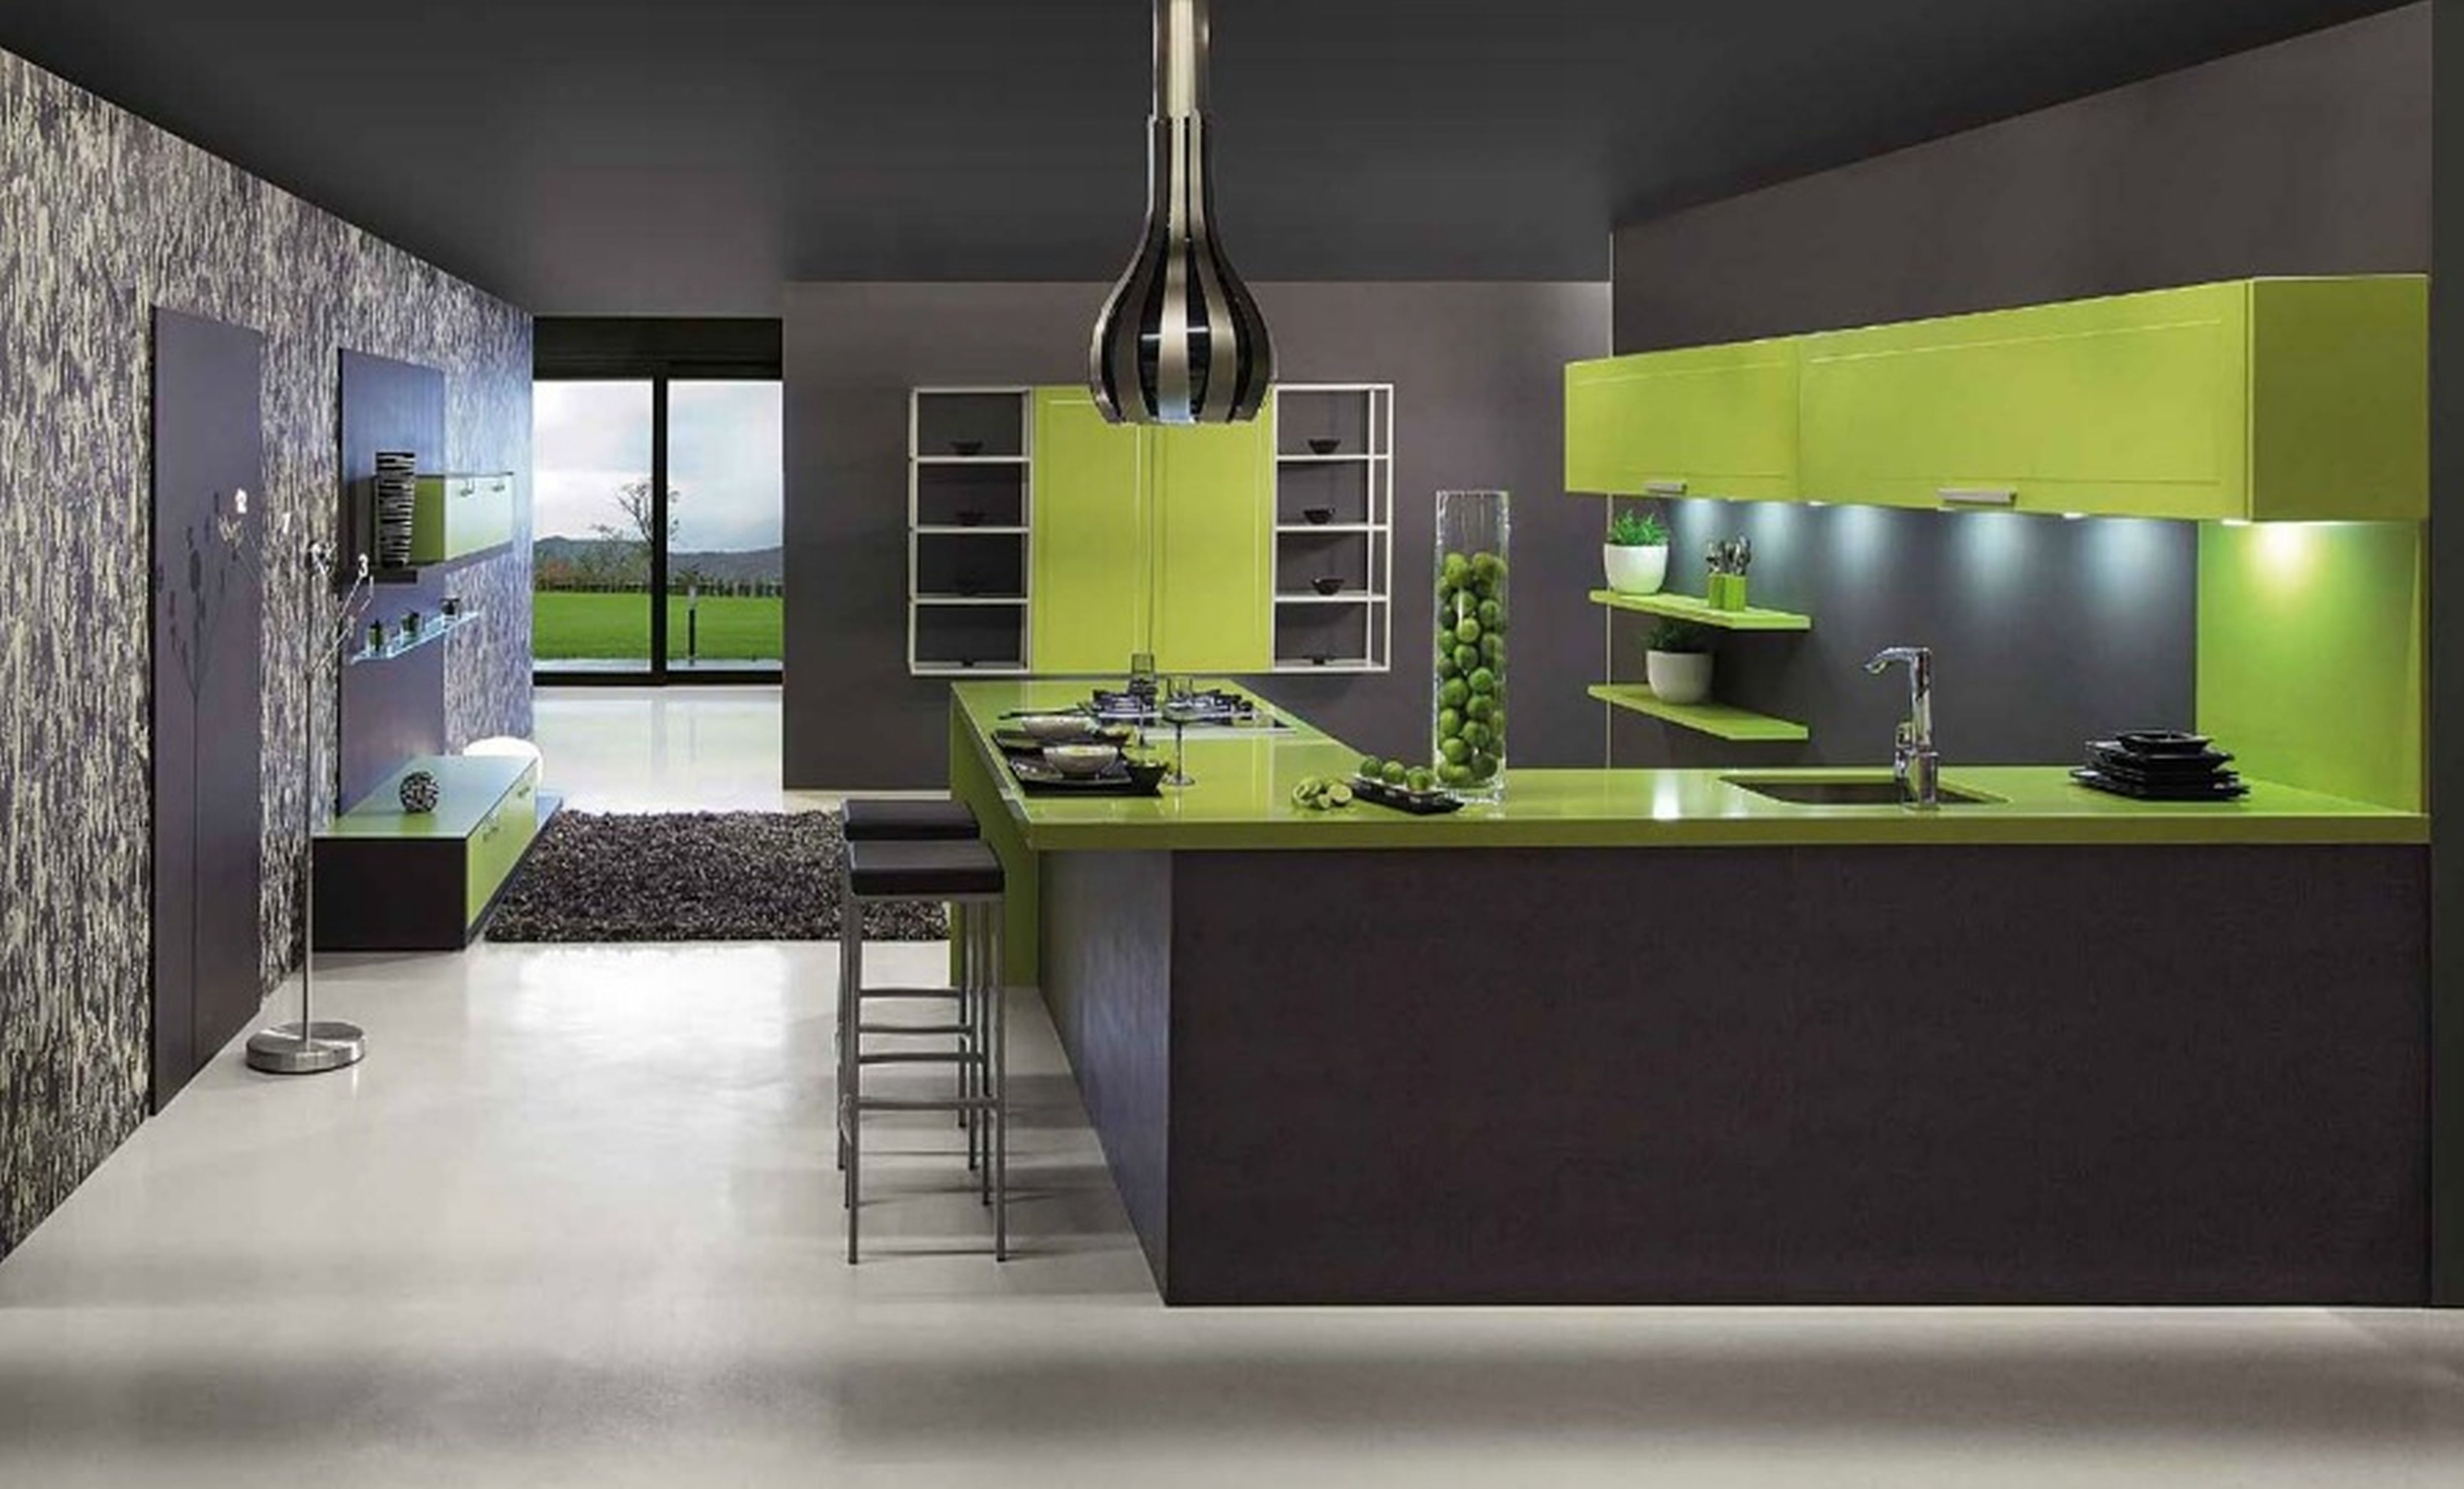 cool-decor-ideas-with-modern-kitchen-floor-tile-and-dark-black-walls-and-ceiling-and-white-floor-and-nice-window-and-unique-hanging-lamp-and-nice-green-kitchen-furniture-design